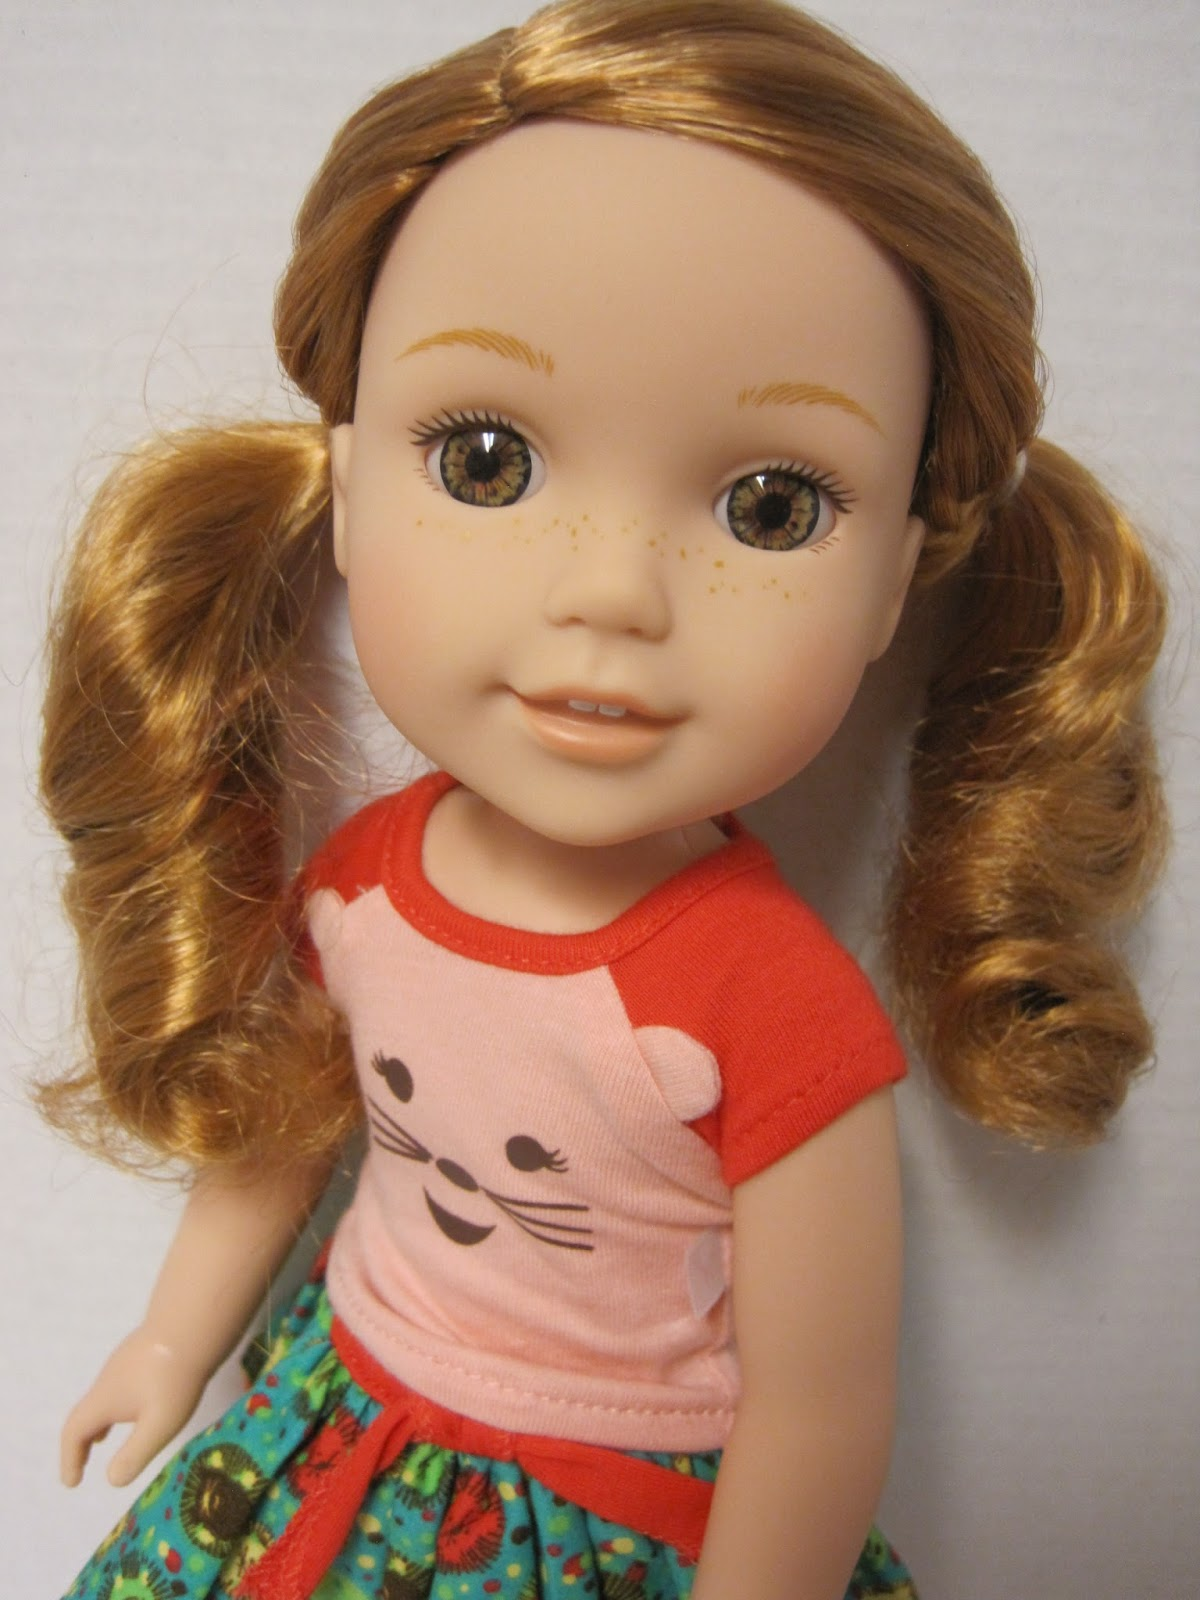 Collectible-American-Girl-Dolls-An-Insiders-Guide-